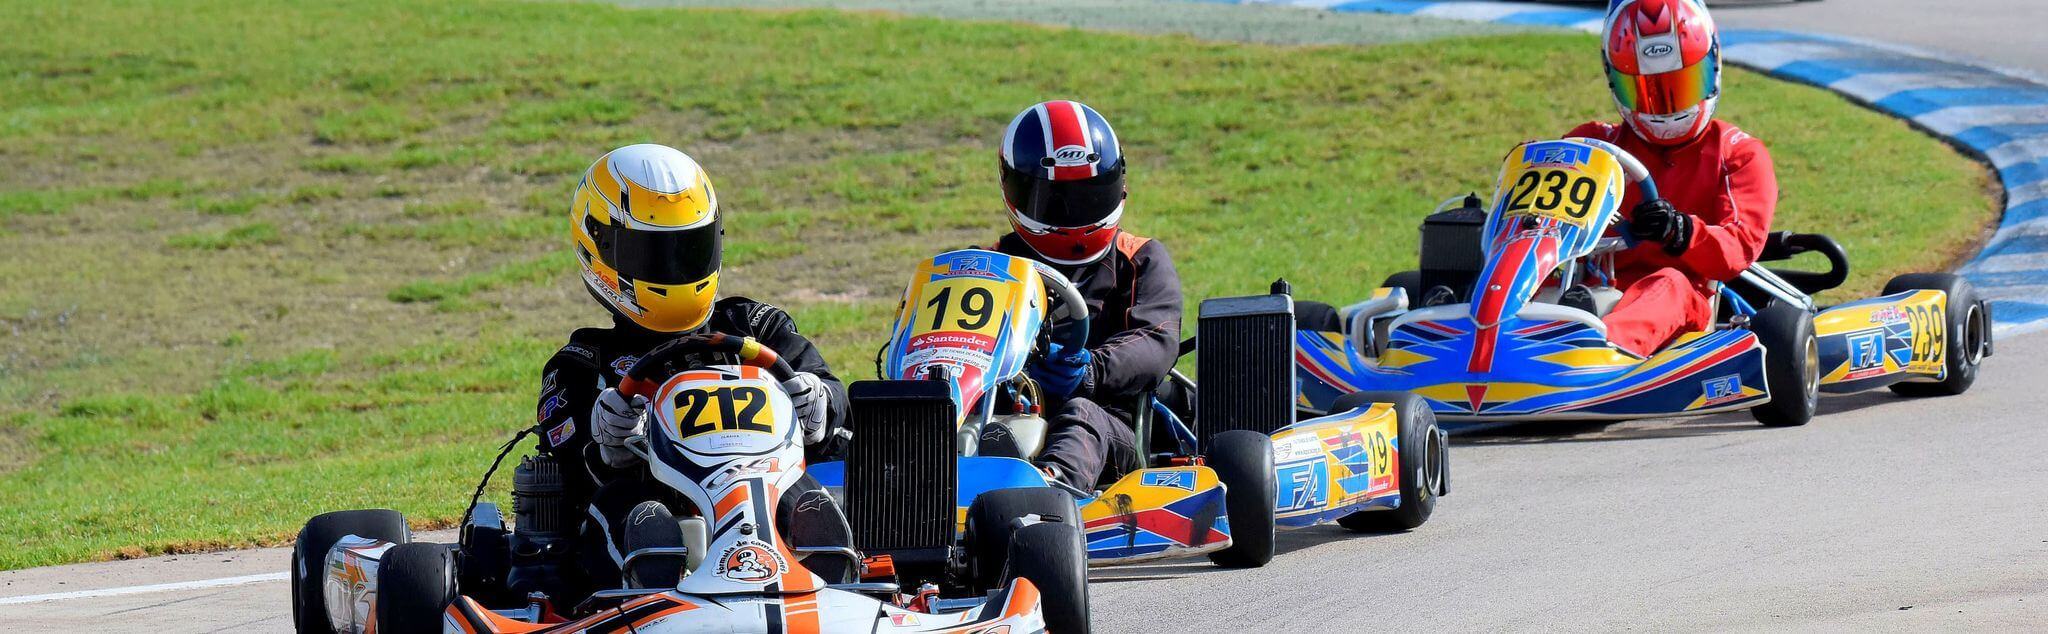 Karting in Dumfries and Galloway